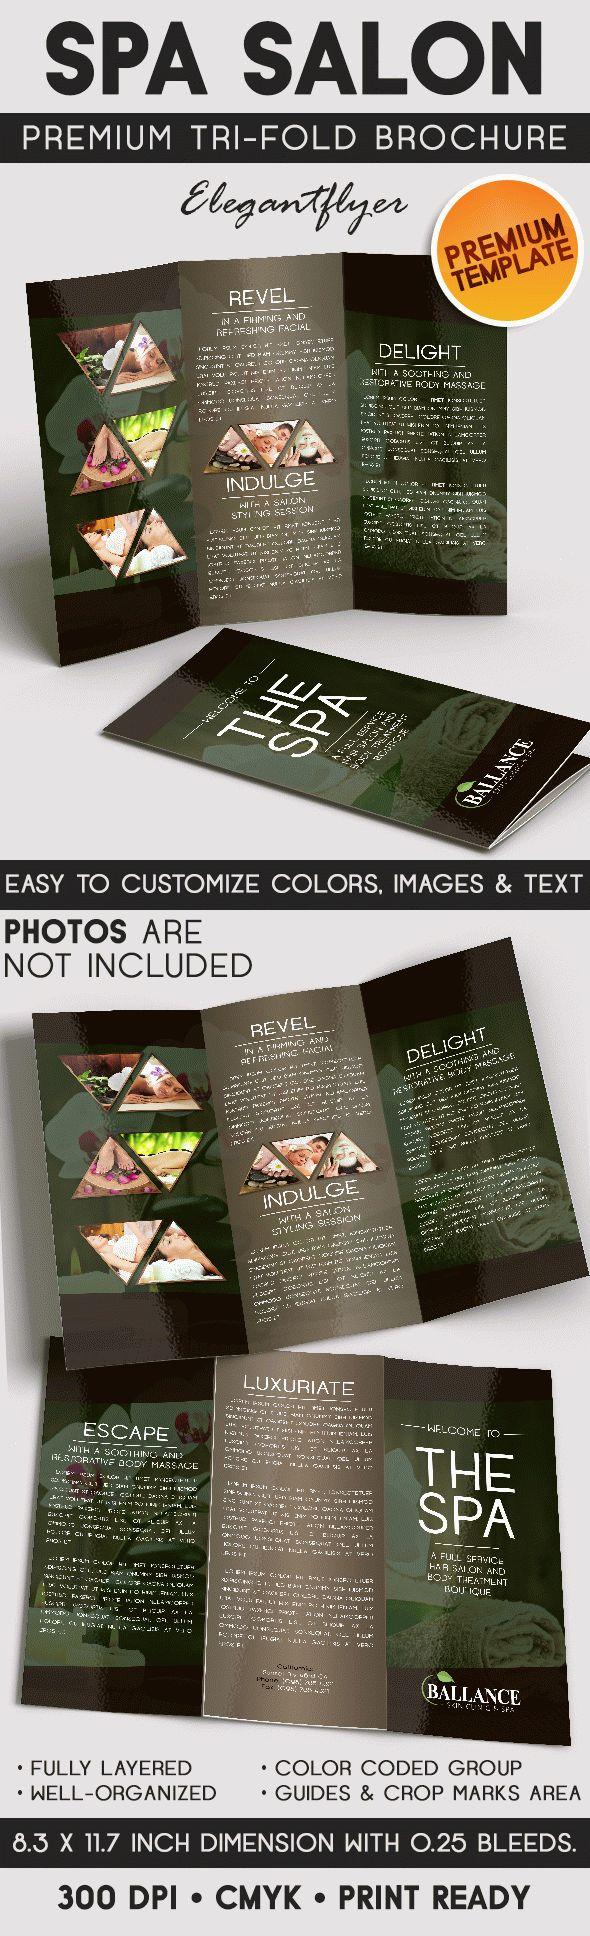 spa brochure templates - spa salon tri fold brochure psd template by elegantflyer